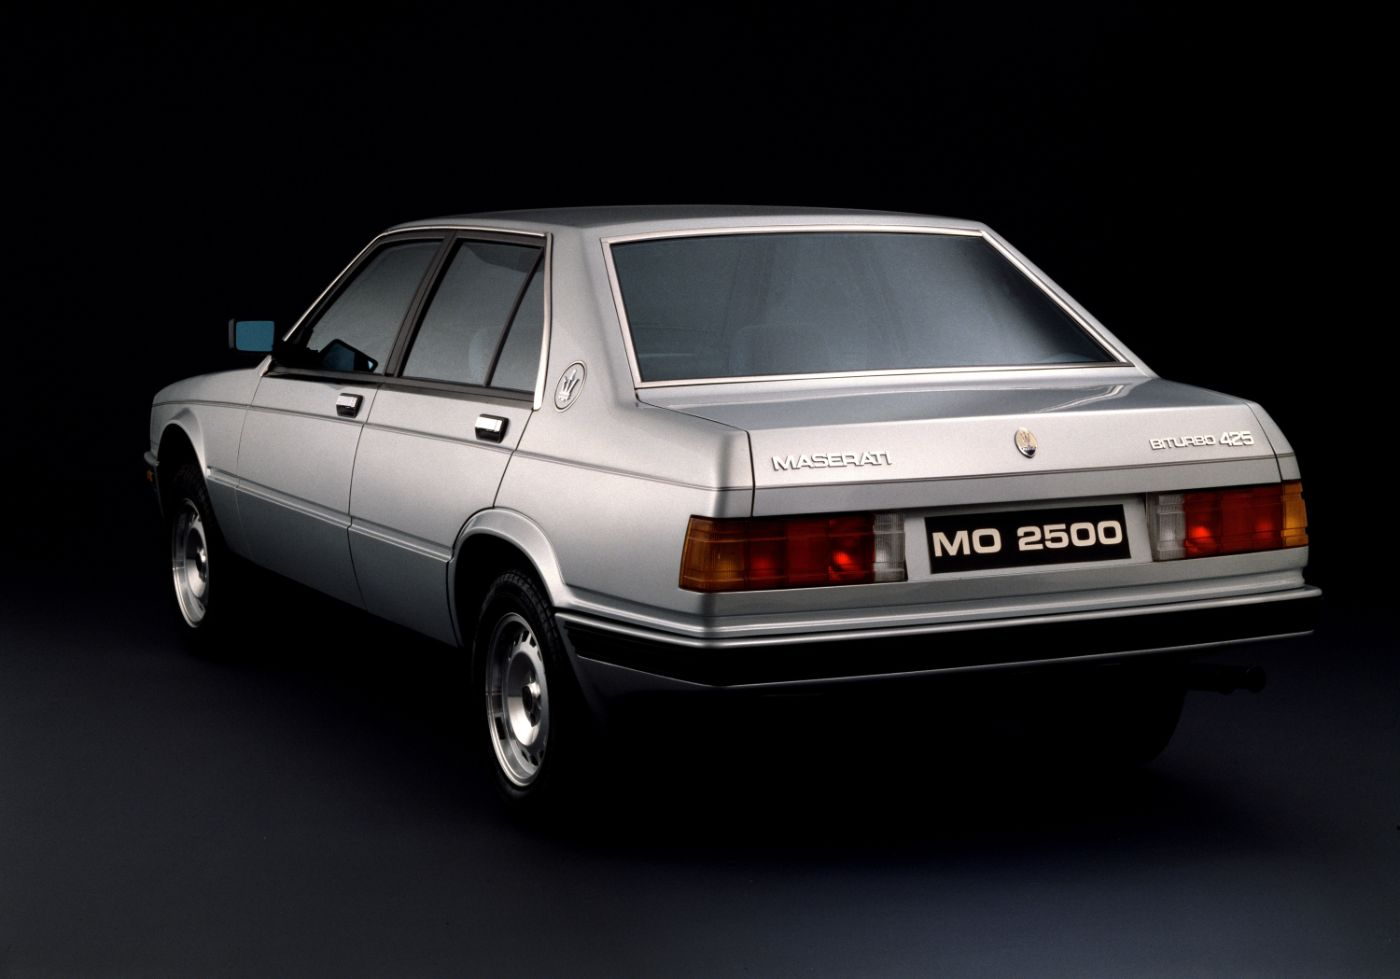 1983 Maserati 425 - rear view of the classic model in white